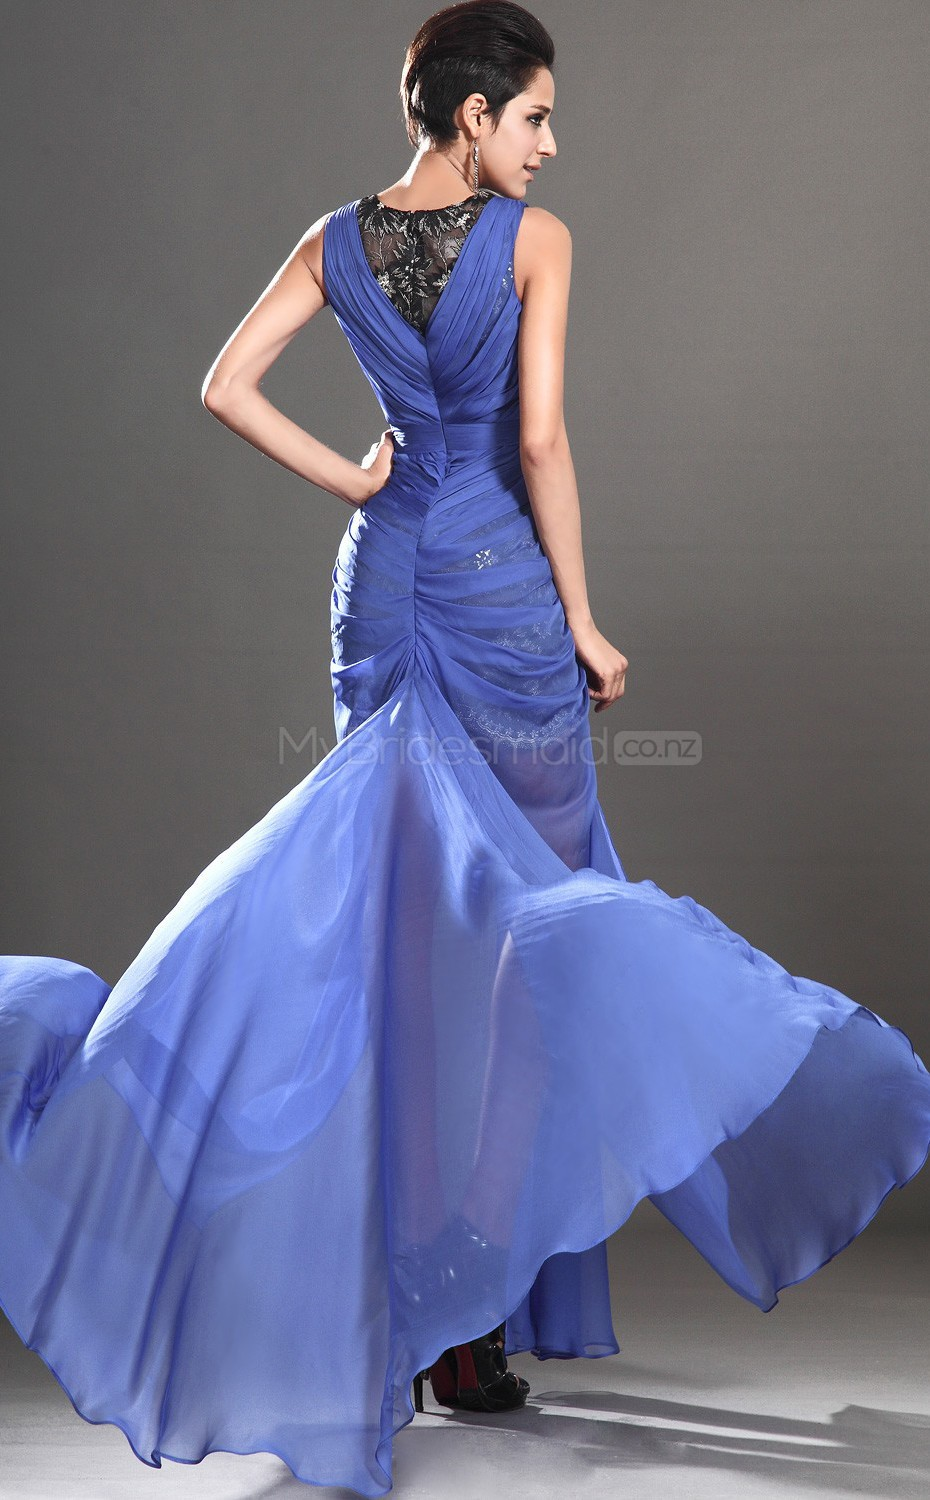 Lace long bridesmaid dresses jewel neck chiffon and lace for Ocean blue wedding dress